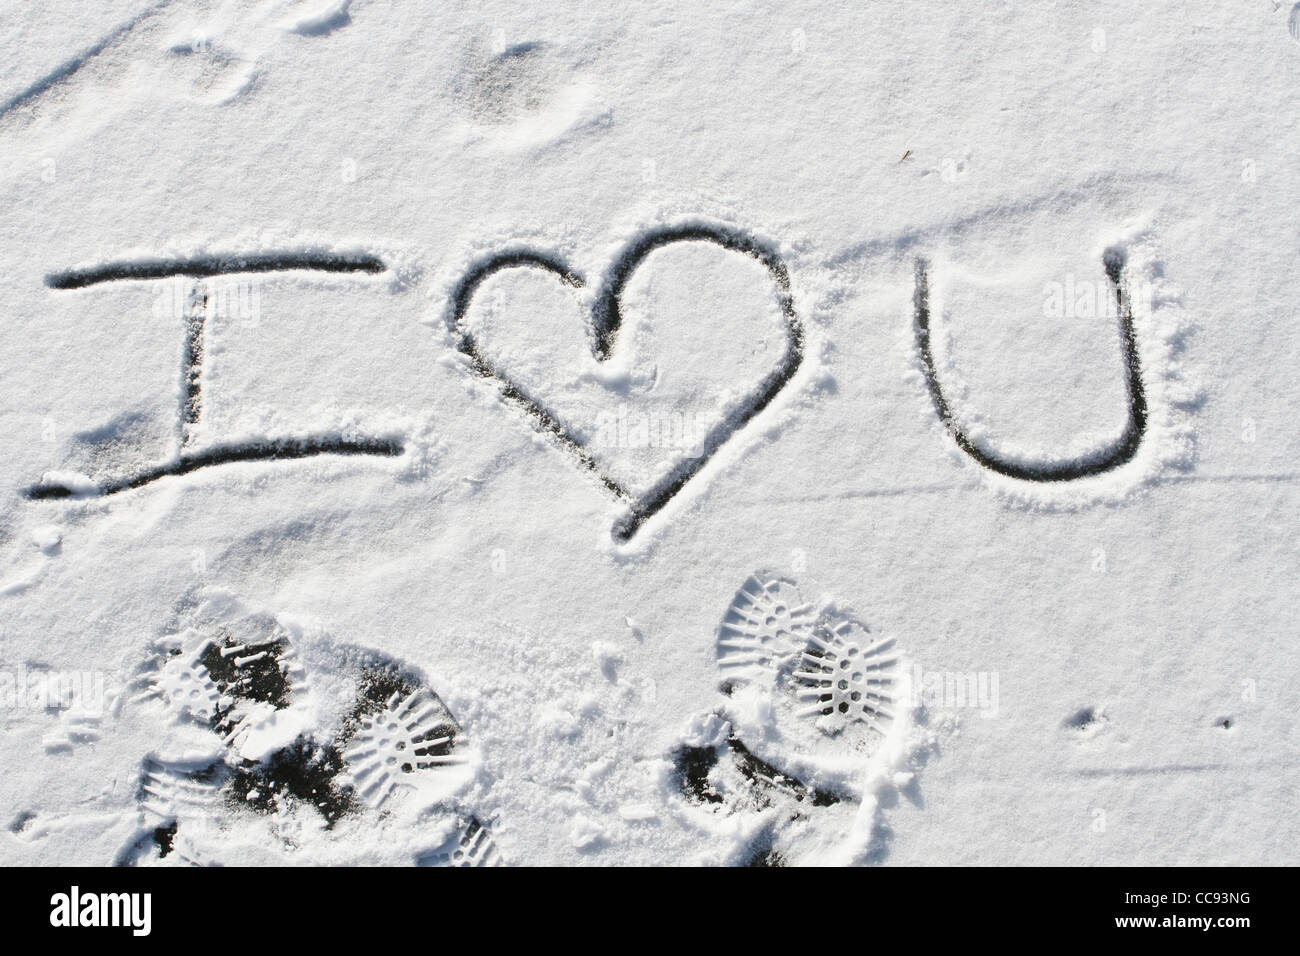 I (heart) you written in snow. - Stock Image